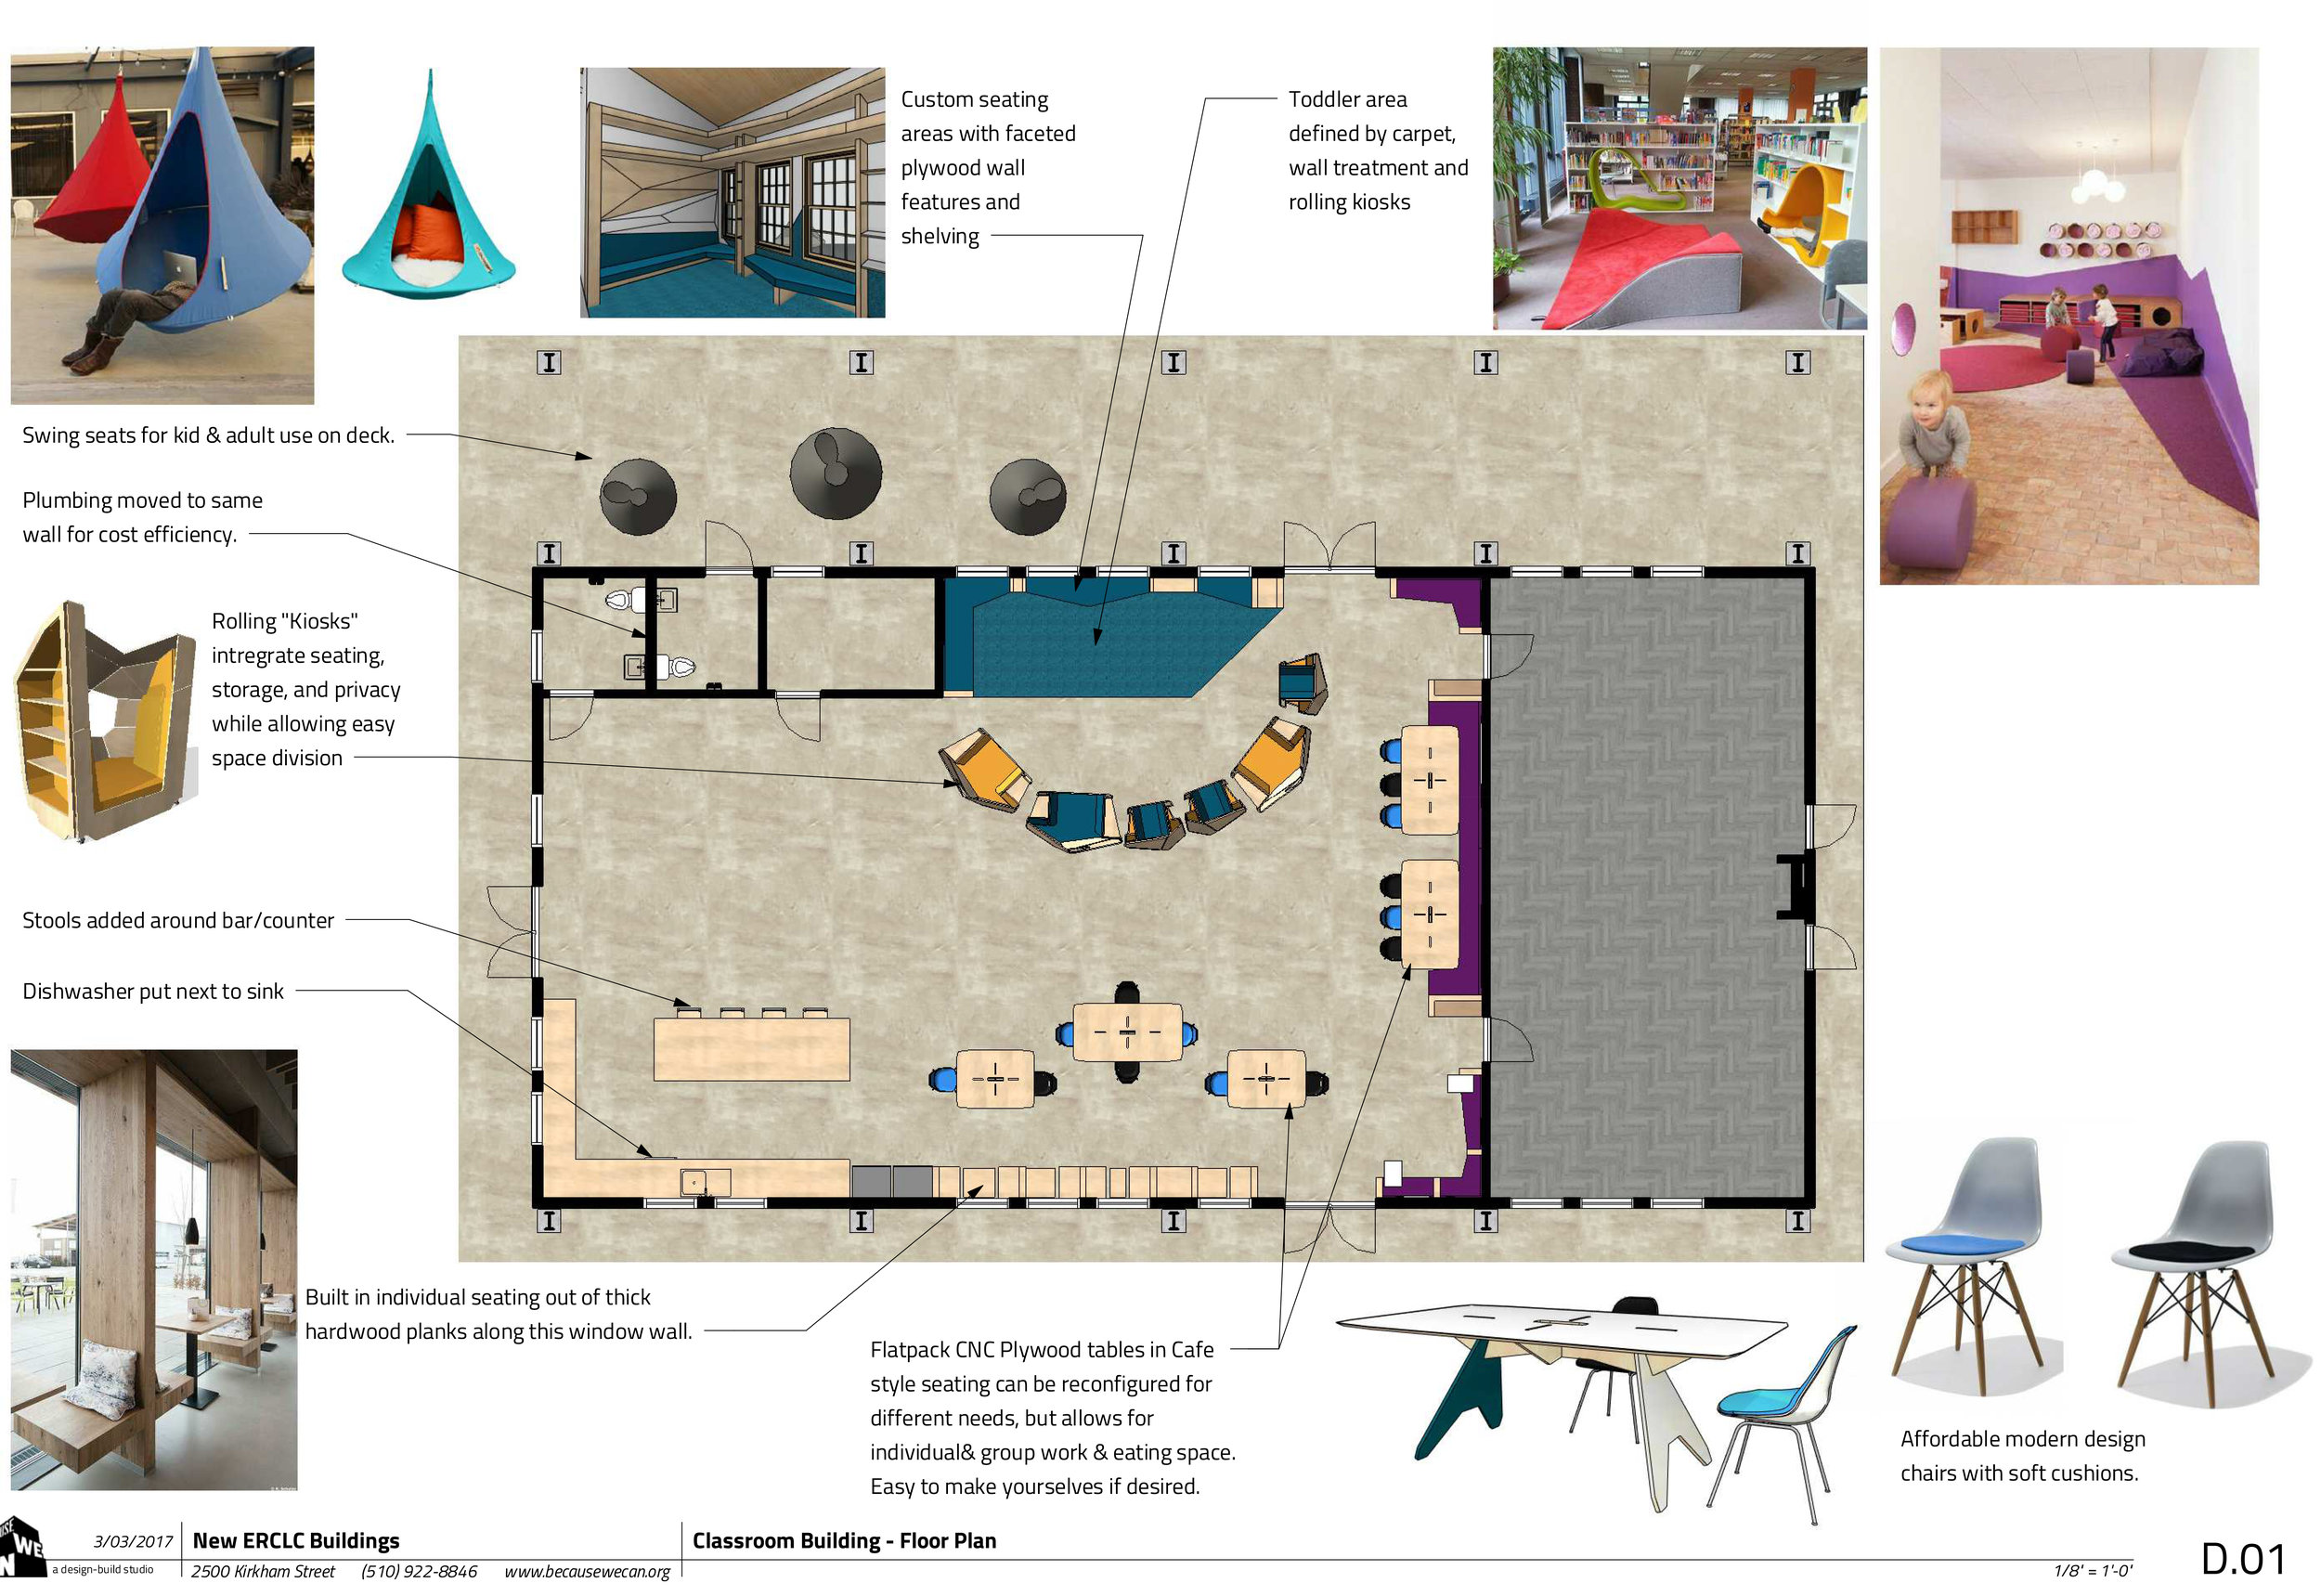 Located in this central valley of CA, this Charter School serves a large community and is in need of more space as they expand. We were brought in to initially do some interior design schemes based on their needs.